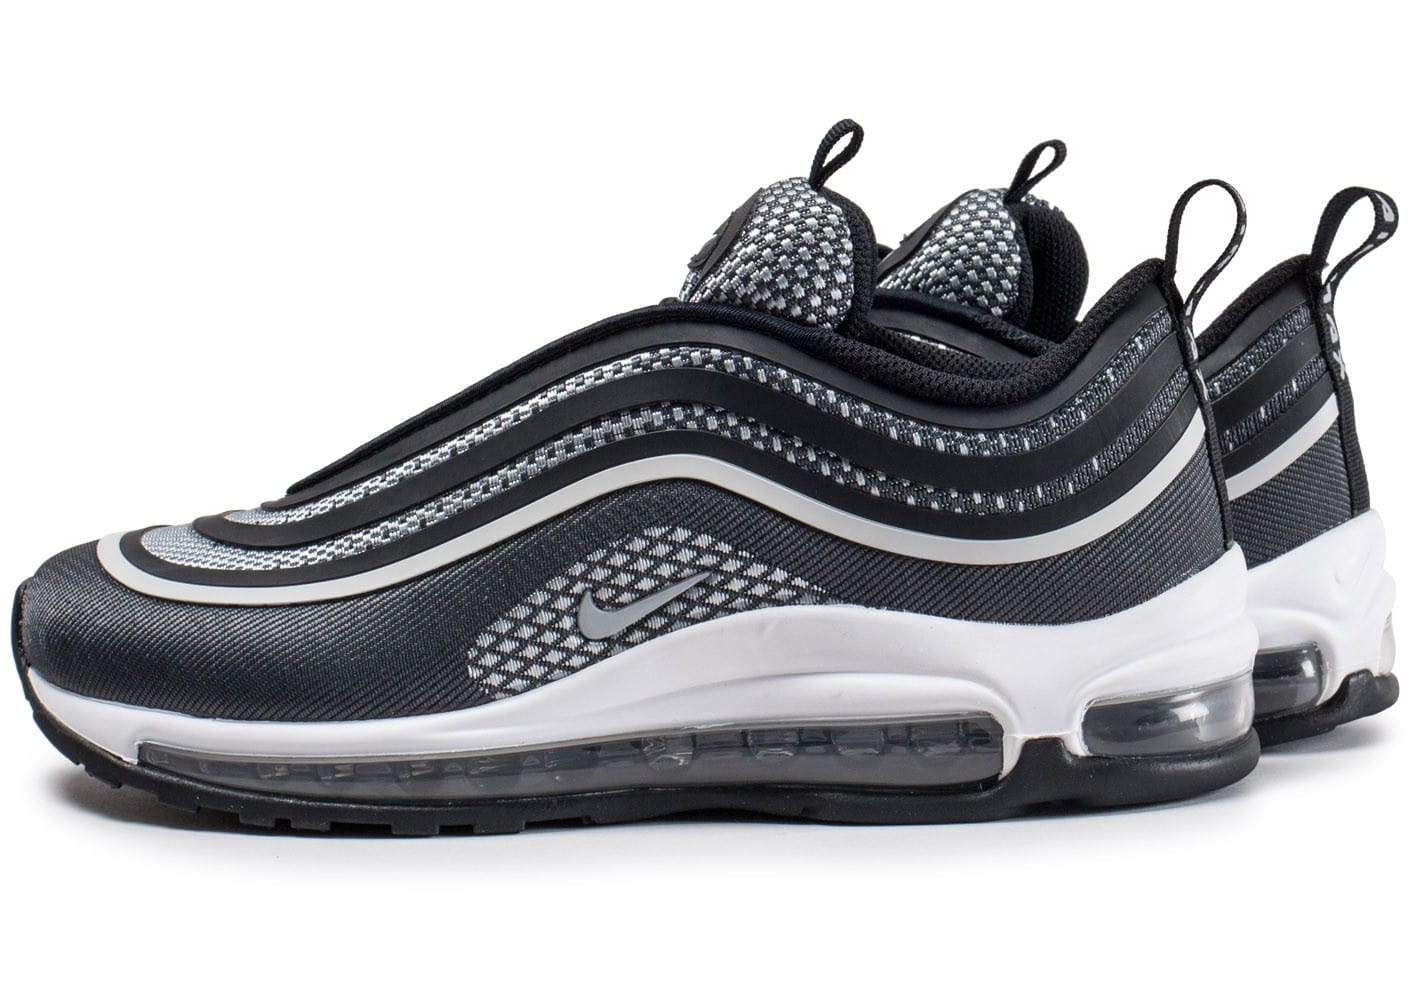 plus de photos 16e5a c15b3 Importation de air max 97 promo,nike air max 97 noir et ...